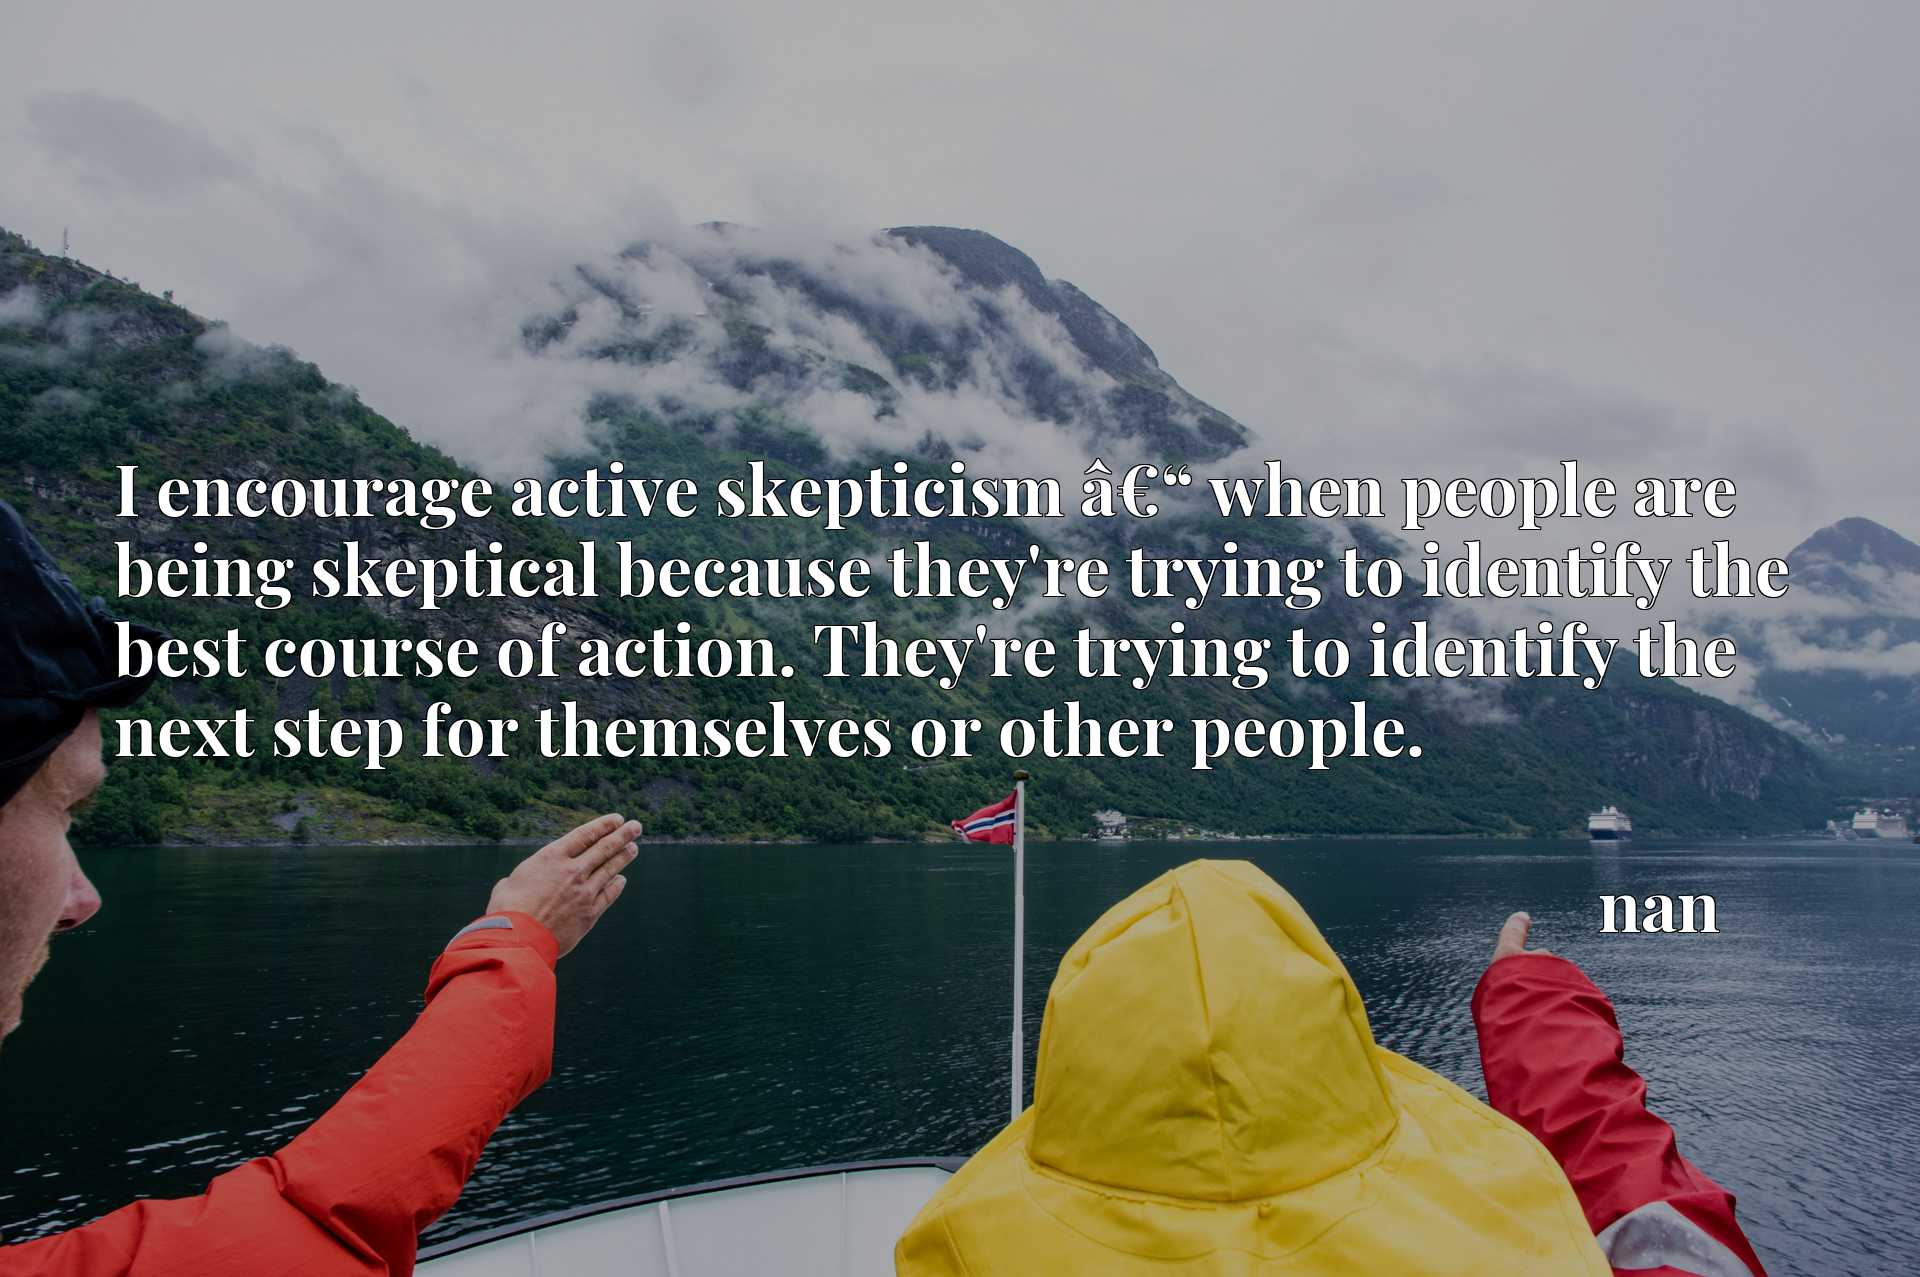 """I encourage active skepticism aEUR"""" when people are being skeptical because they're trying to identify the best course of action. They're trying to identify the next step for themselves or other people."""